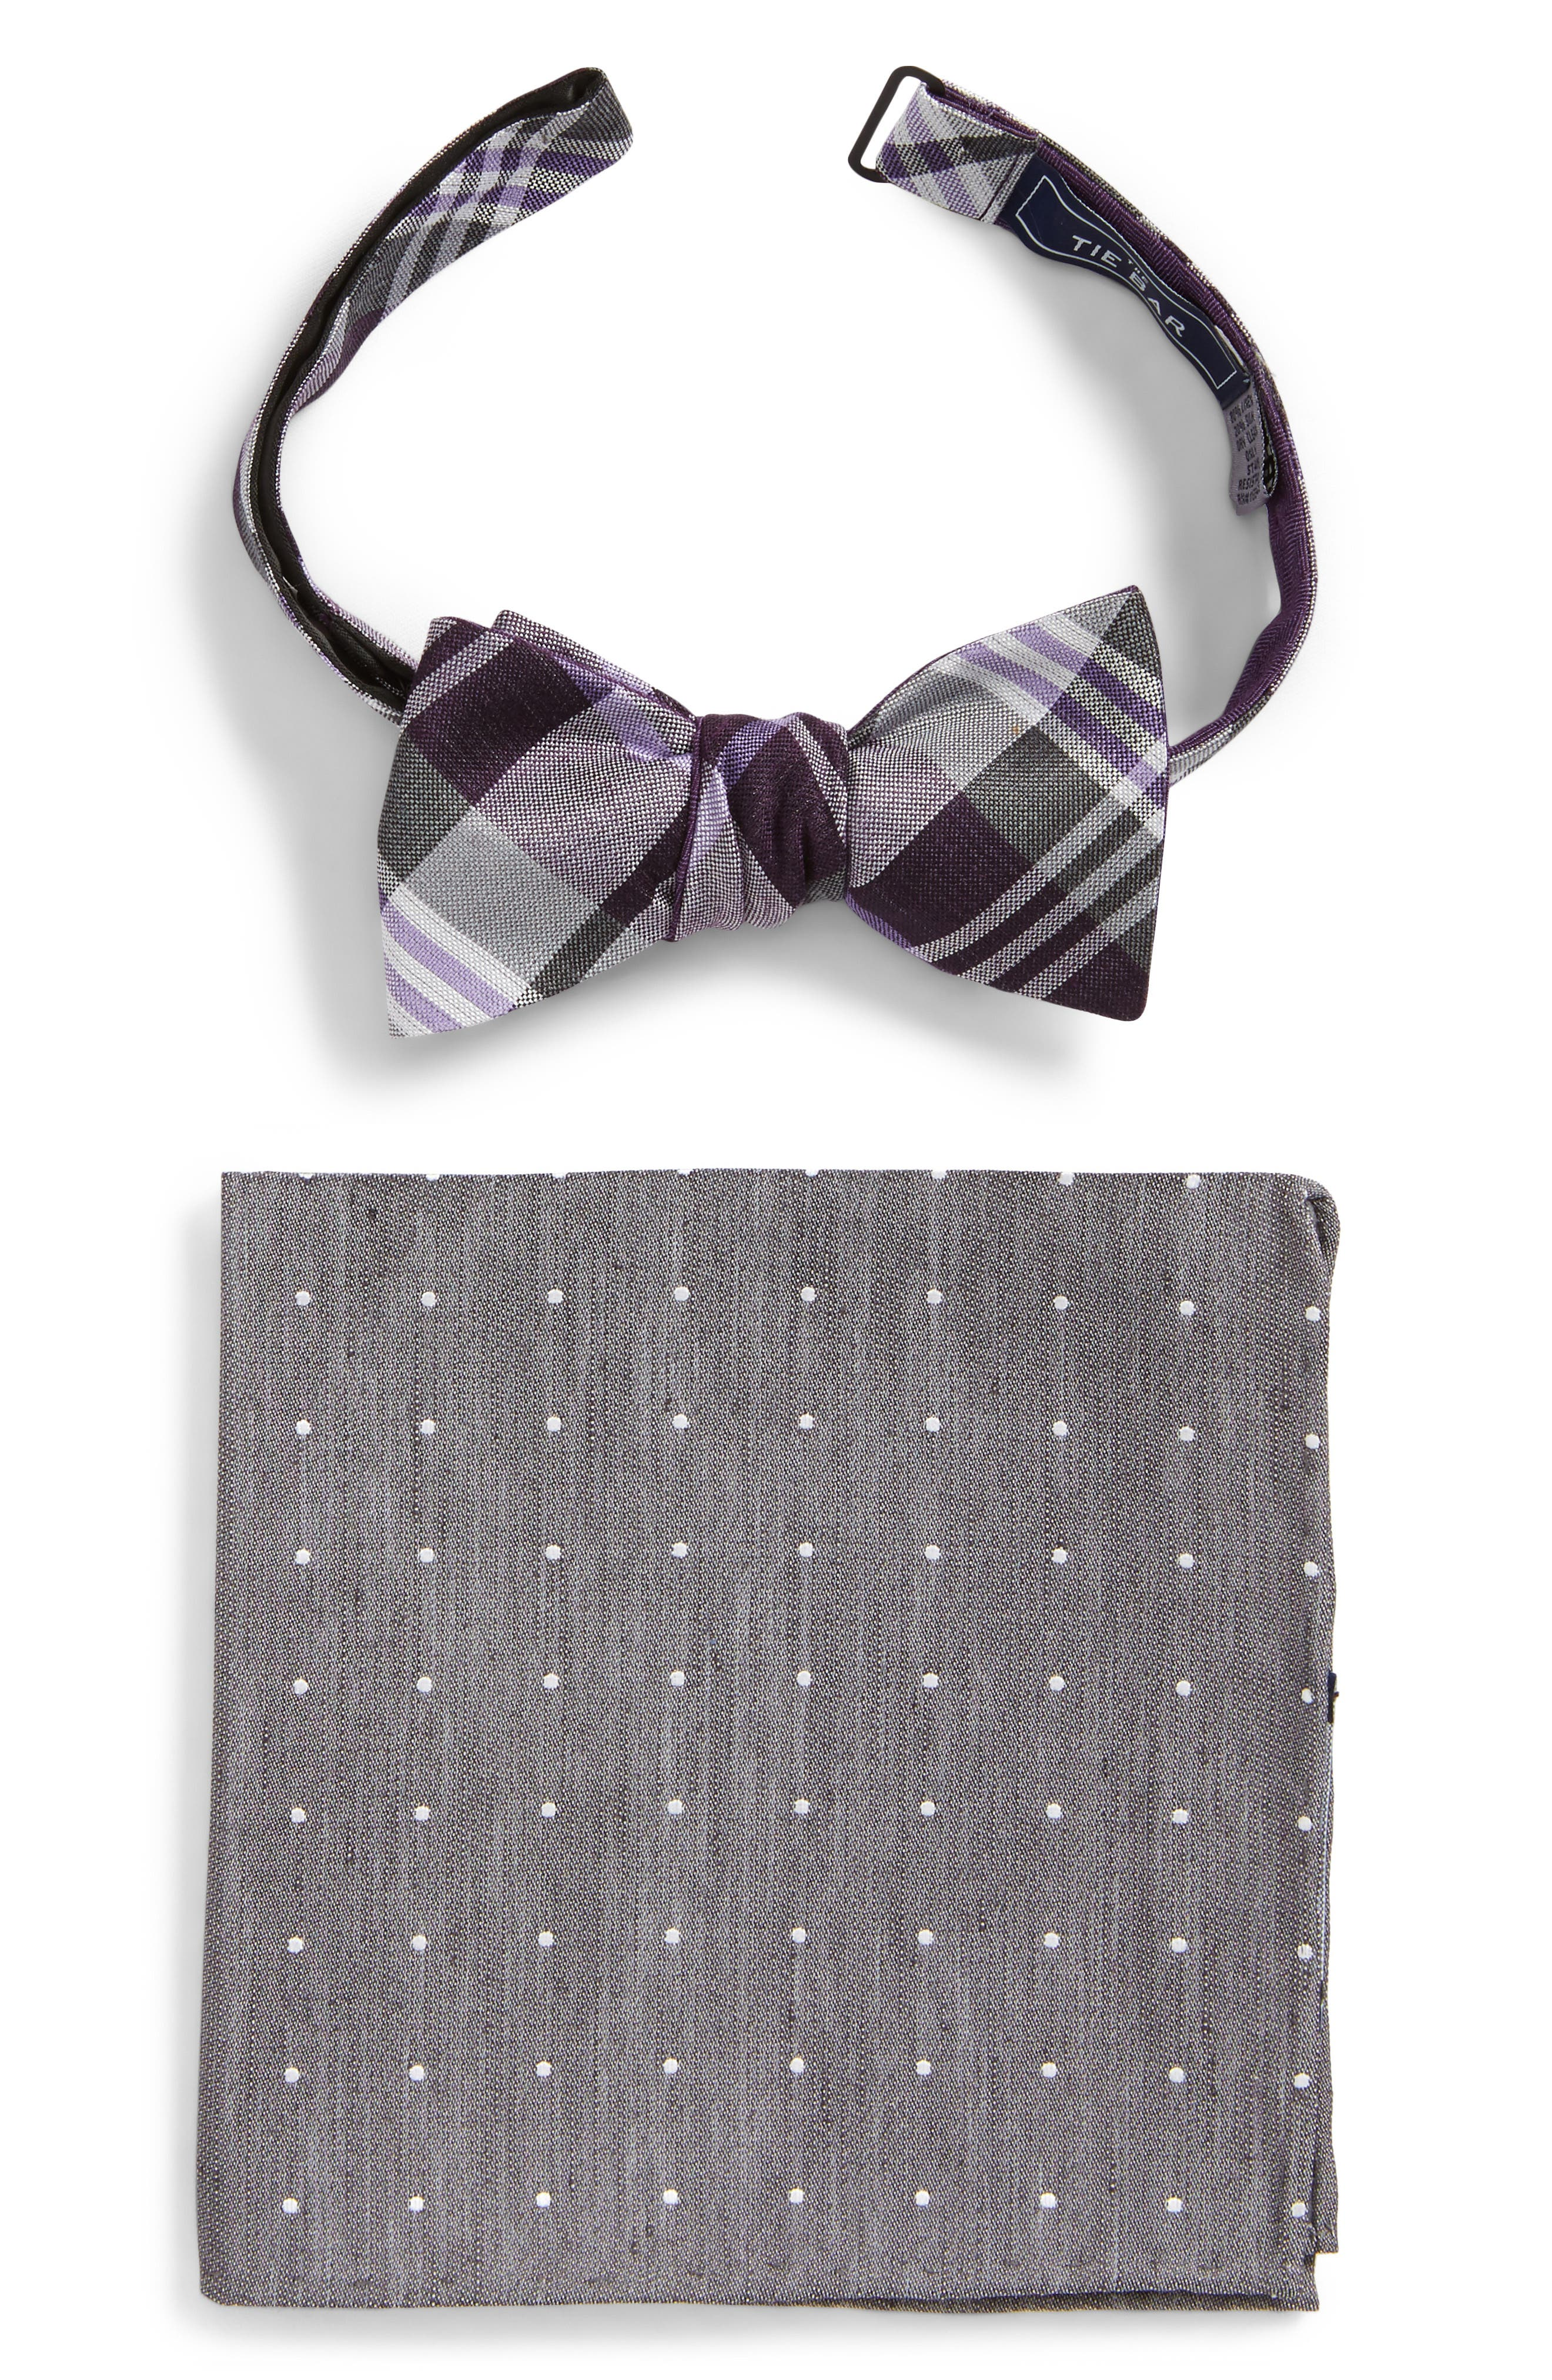 Main Image - The Tie Bar Crystal Wave Bow Tie & Pocket Square Box Set